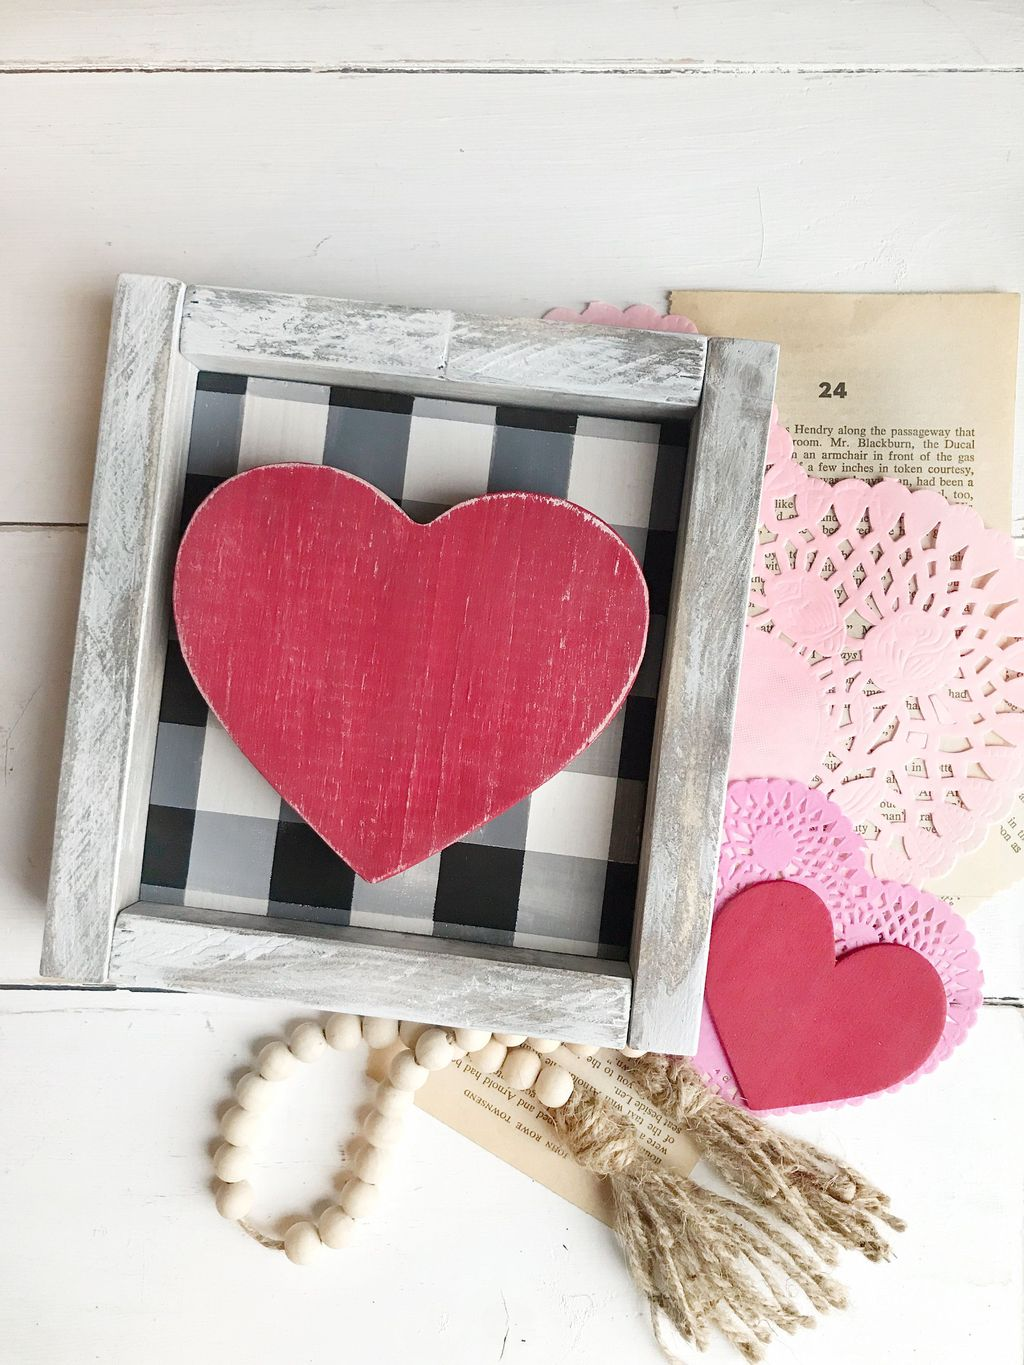 Inspiring Valentine Crafts Ideas For Your Home Decor 43